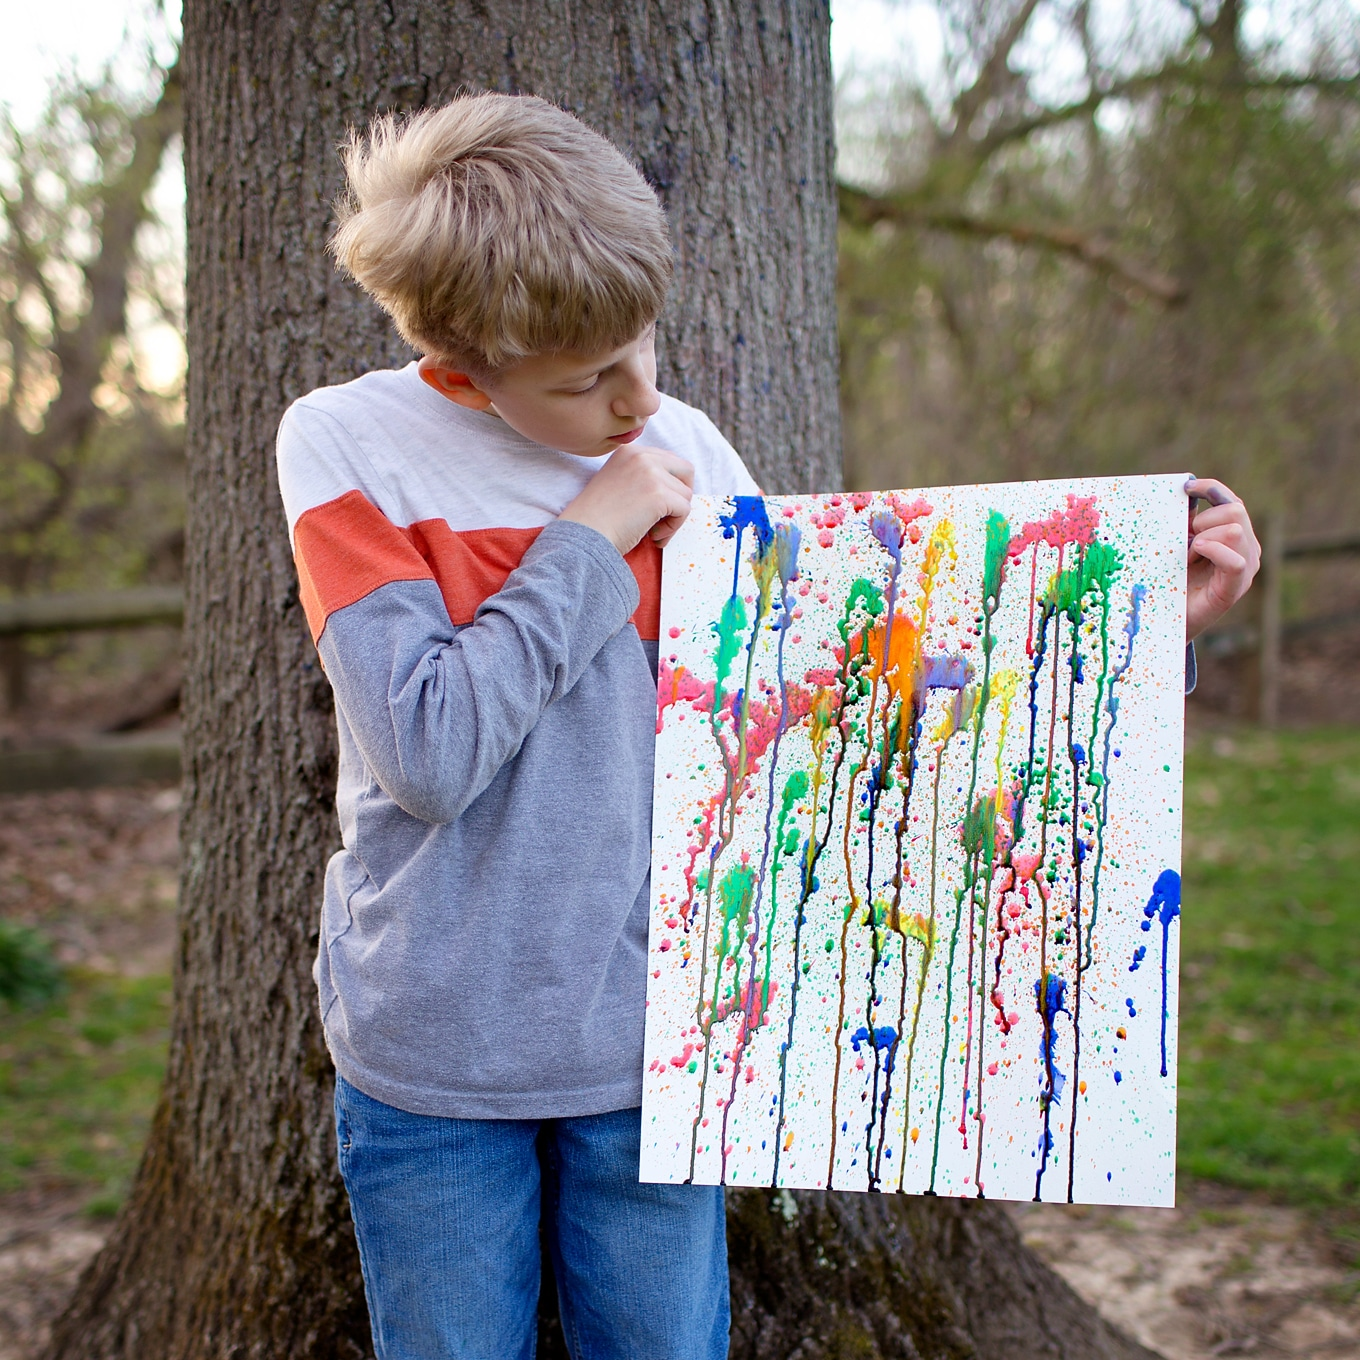 Child Holding Squirt Gun Painting